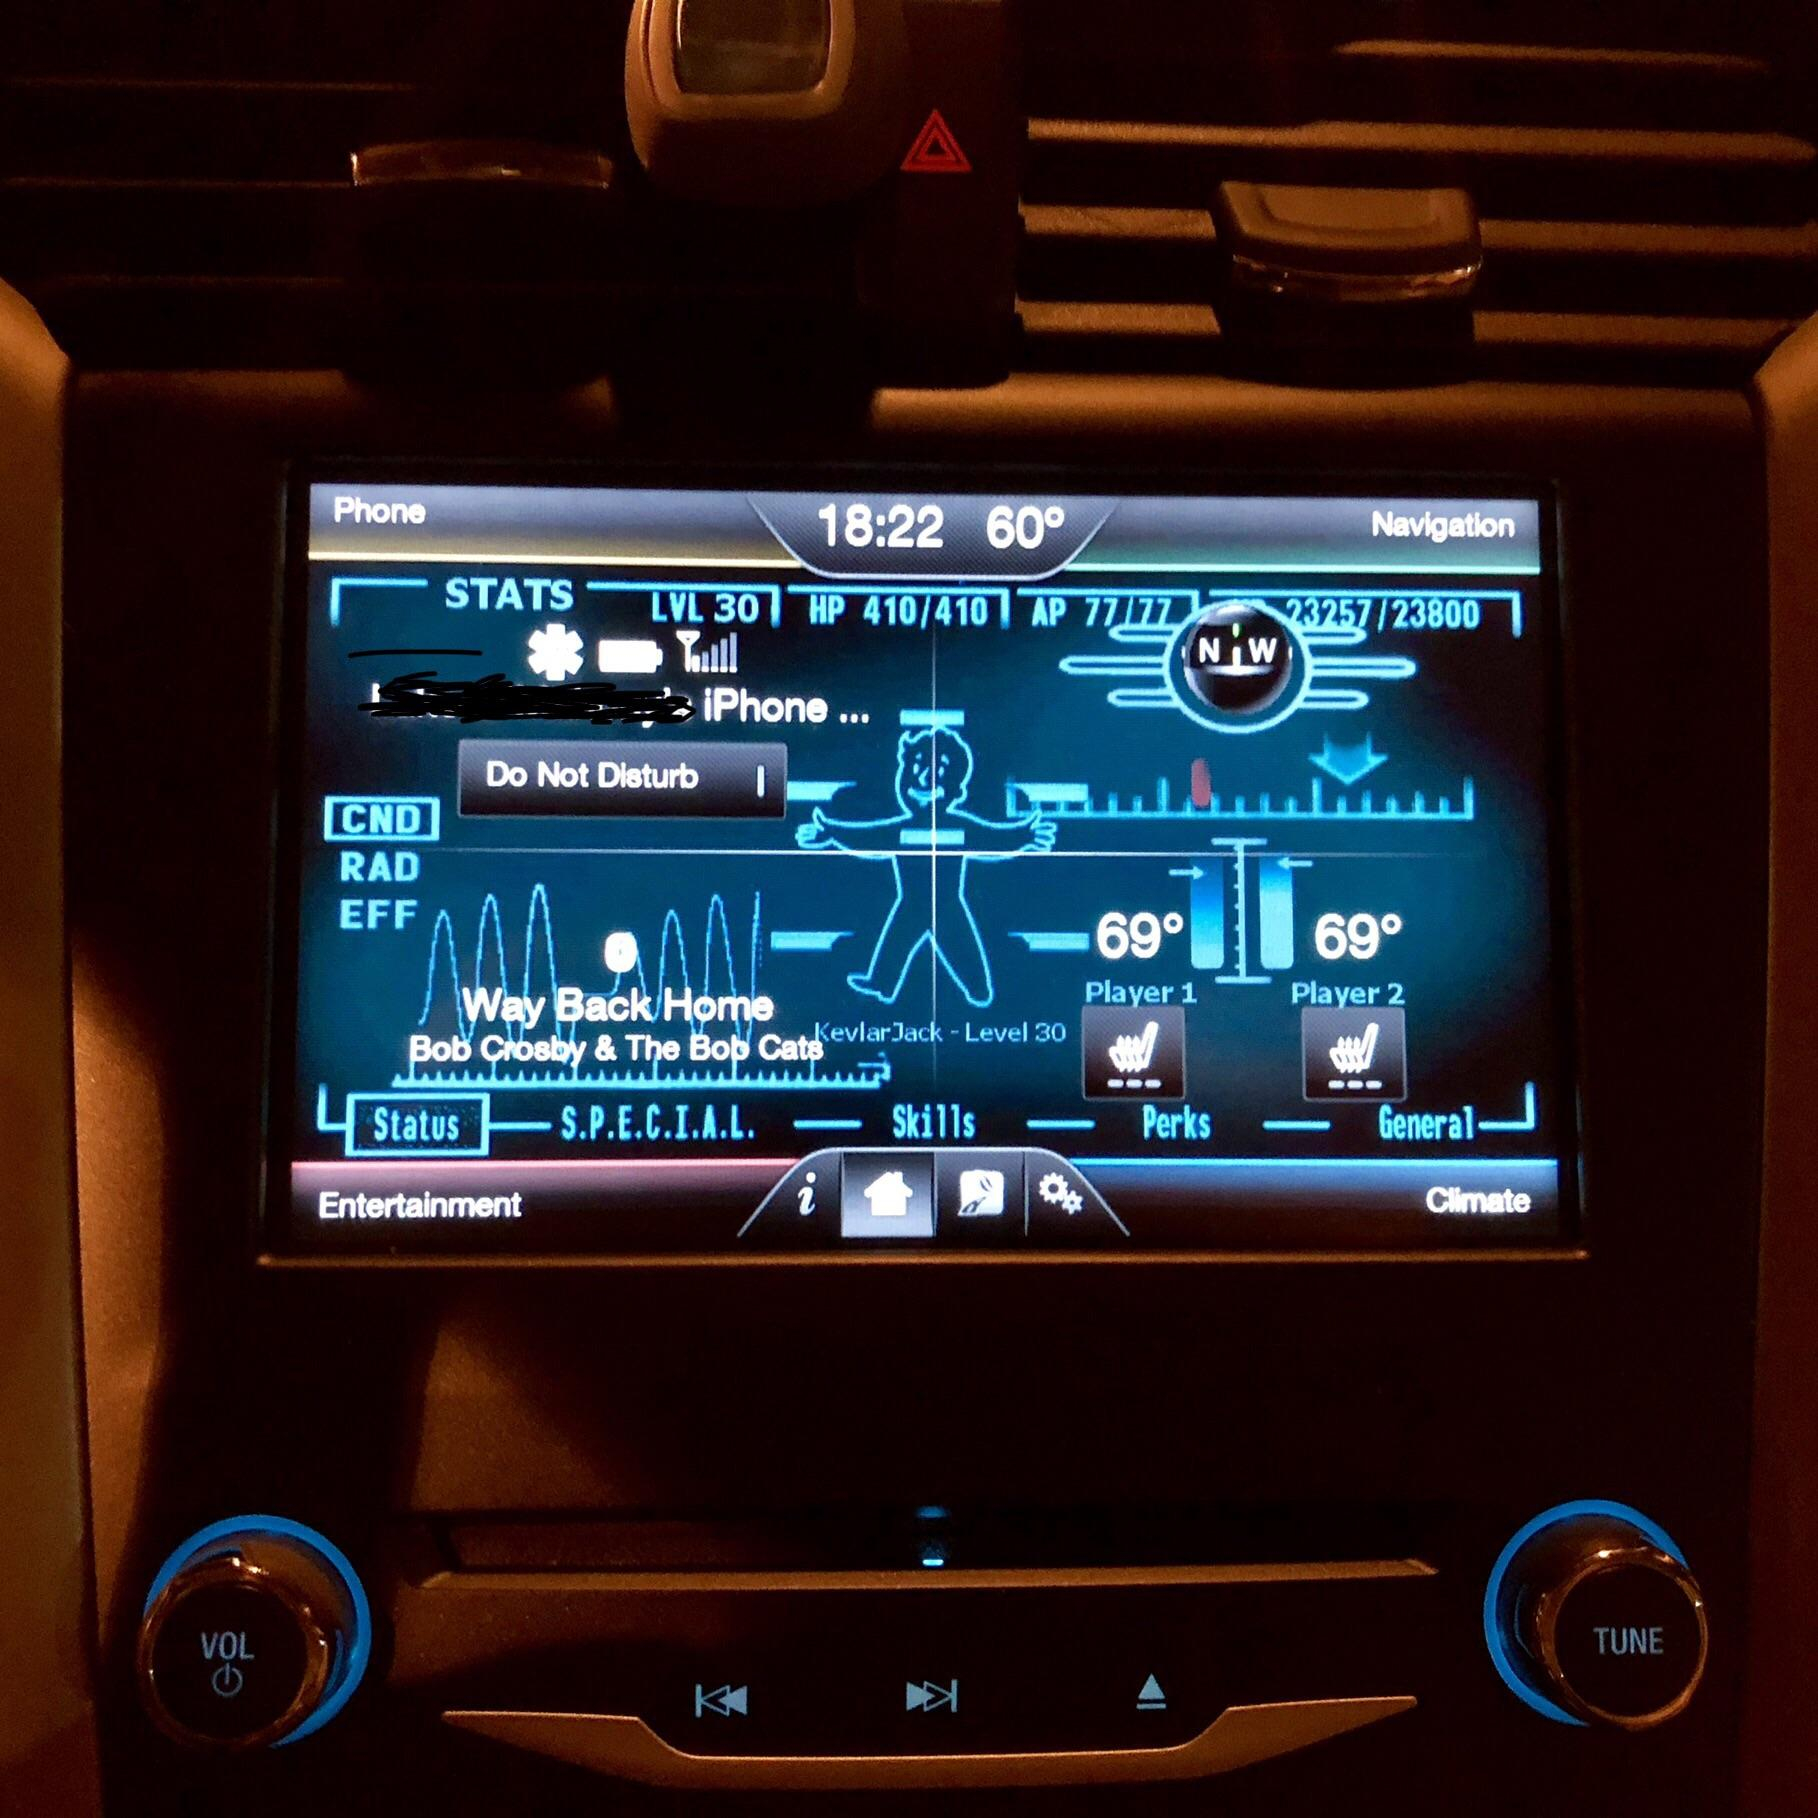 Pip boy Wallpaper From Fallout In My Car Vehicle Audio Hd